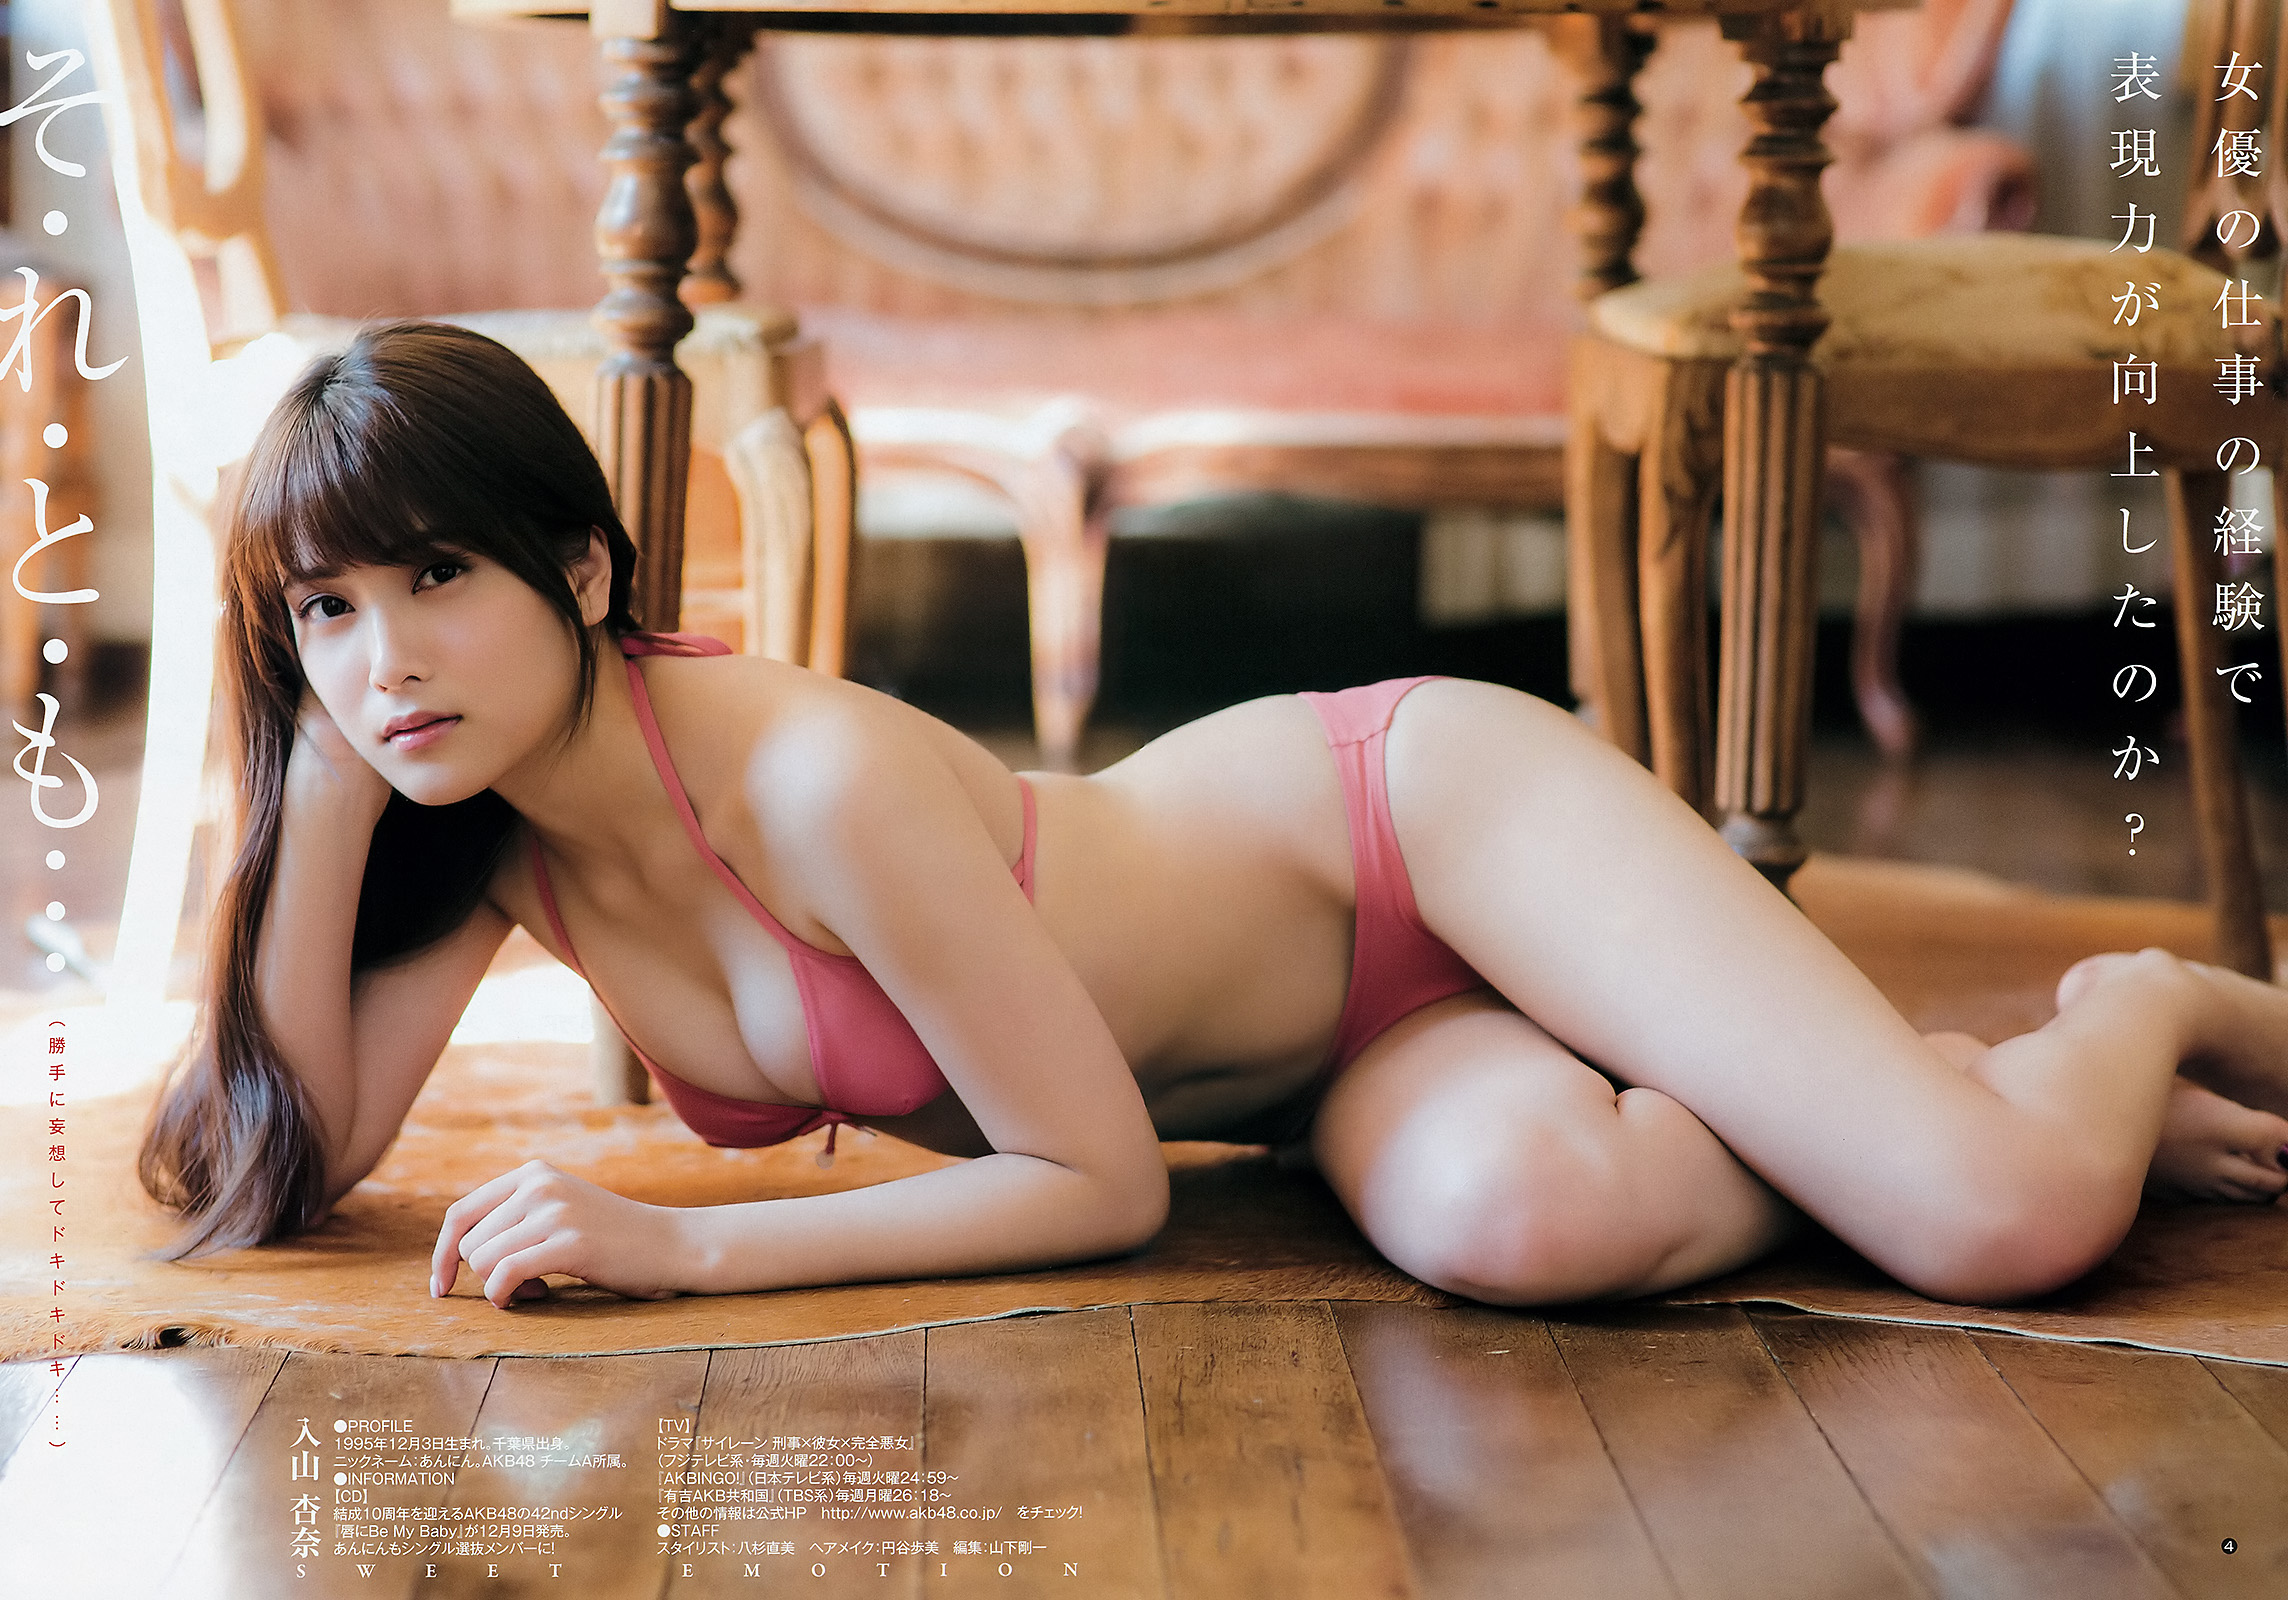 Iriyama Anna 入山杏奈 Young Jump 2016 No 1 Wallpaper HD